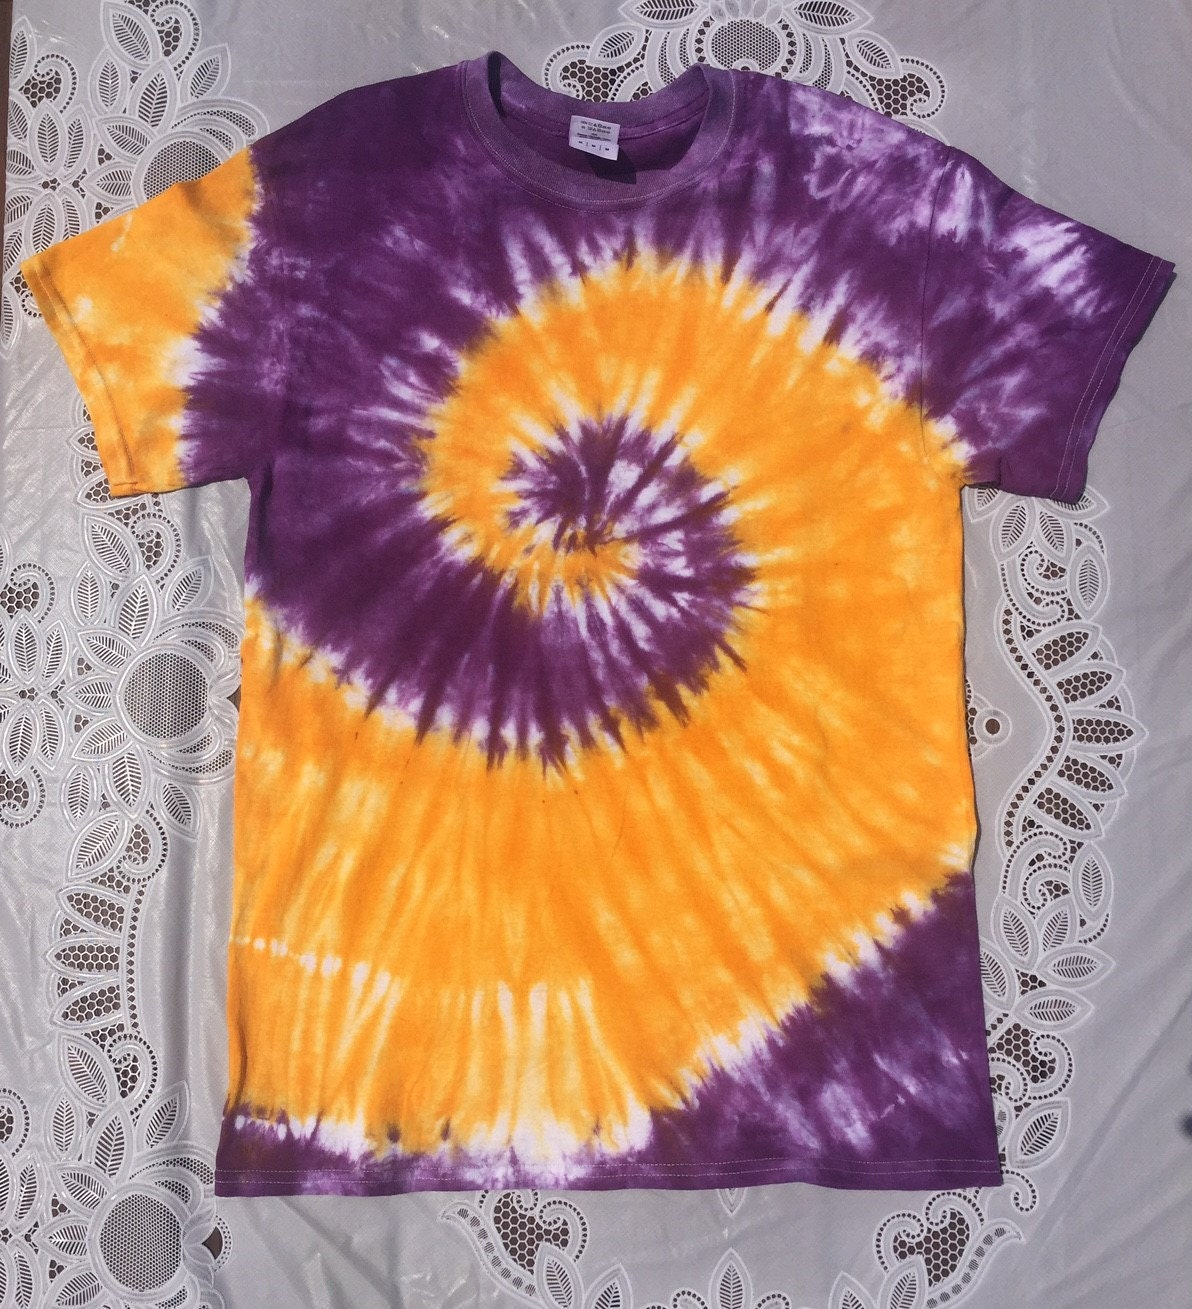 Purple and gold spiral custom tie dye shirt for Customized tie dye shirts